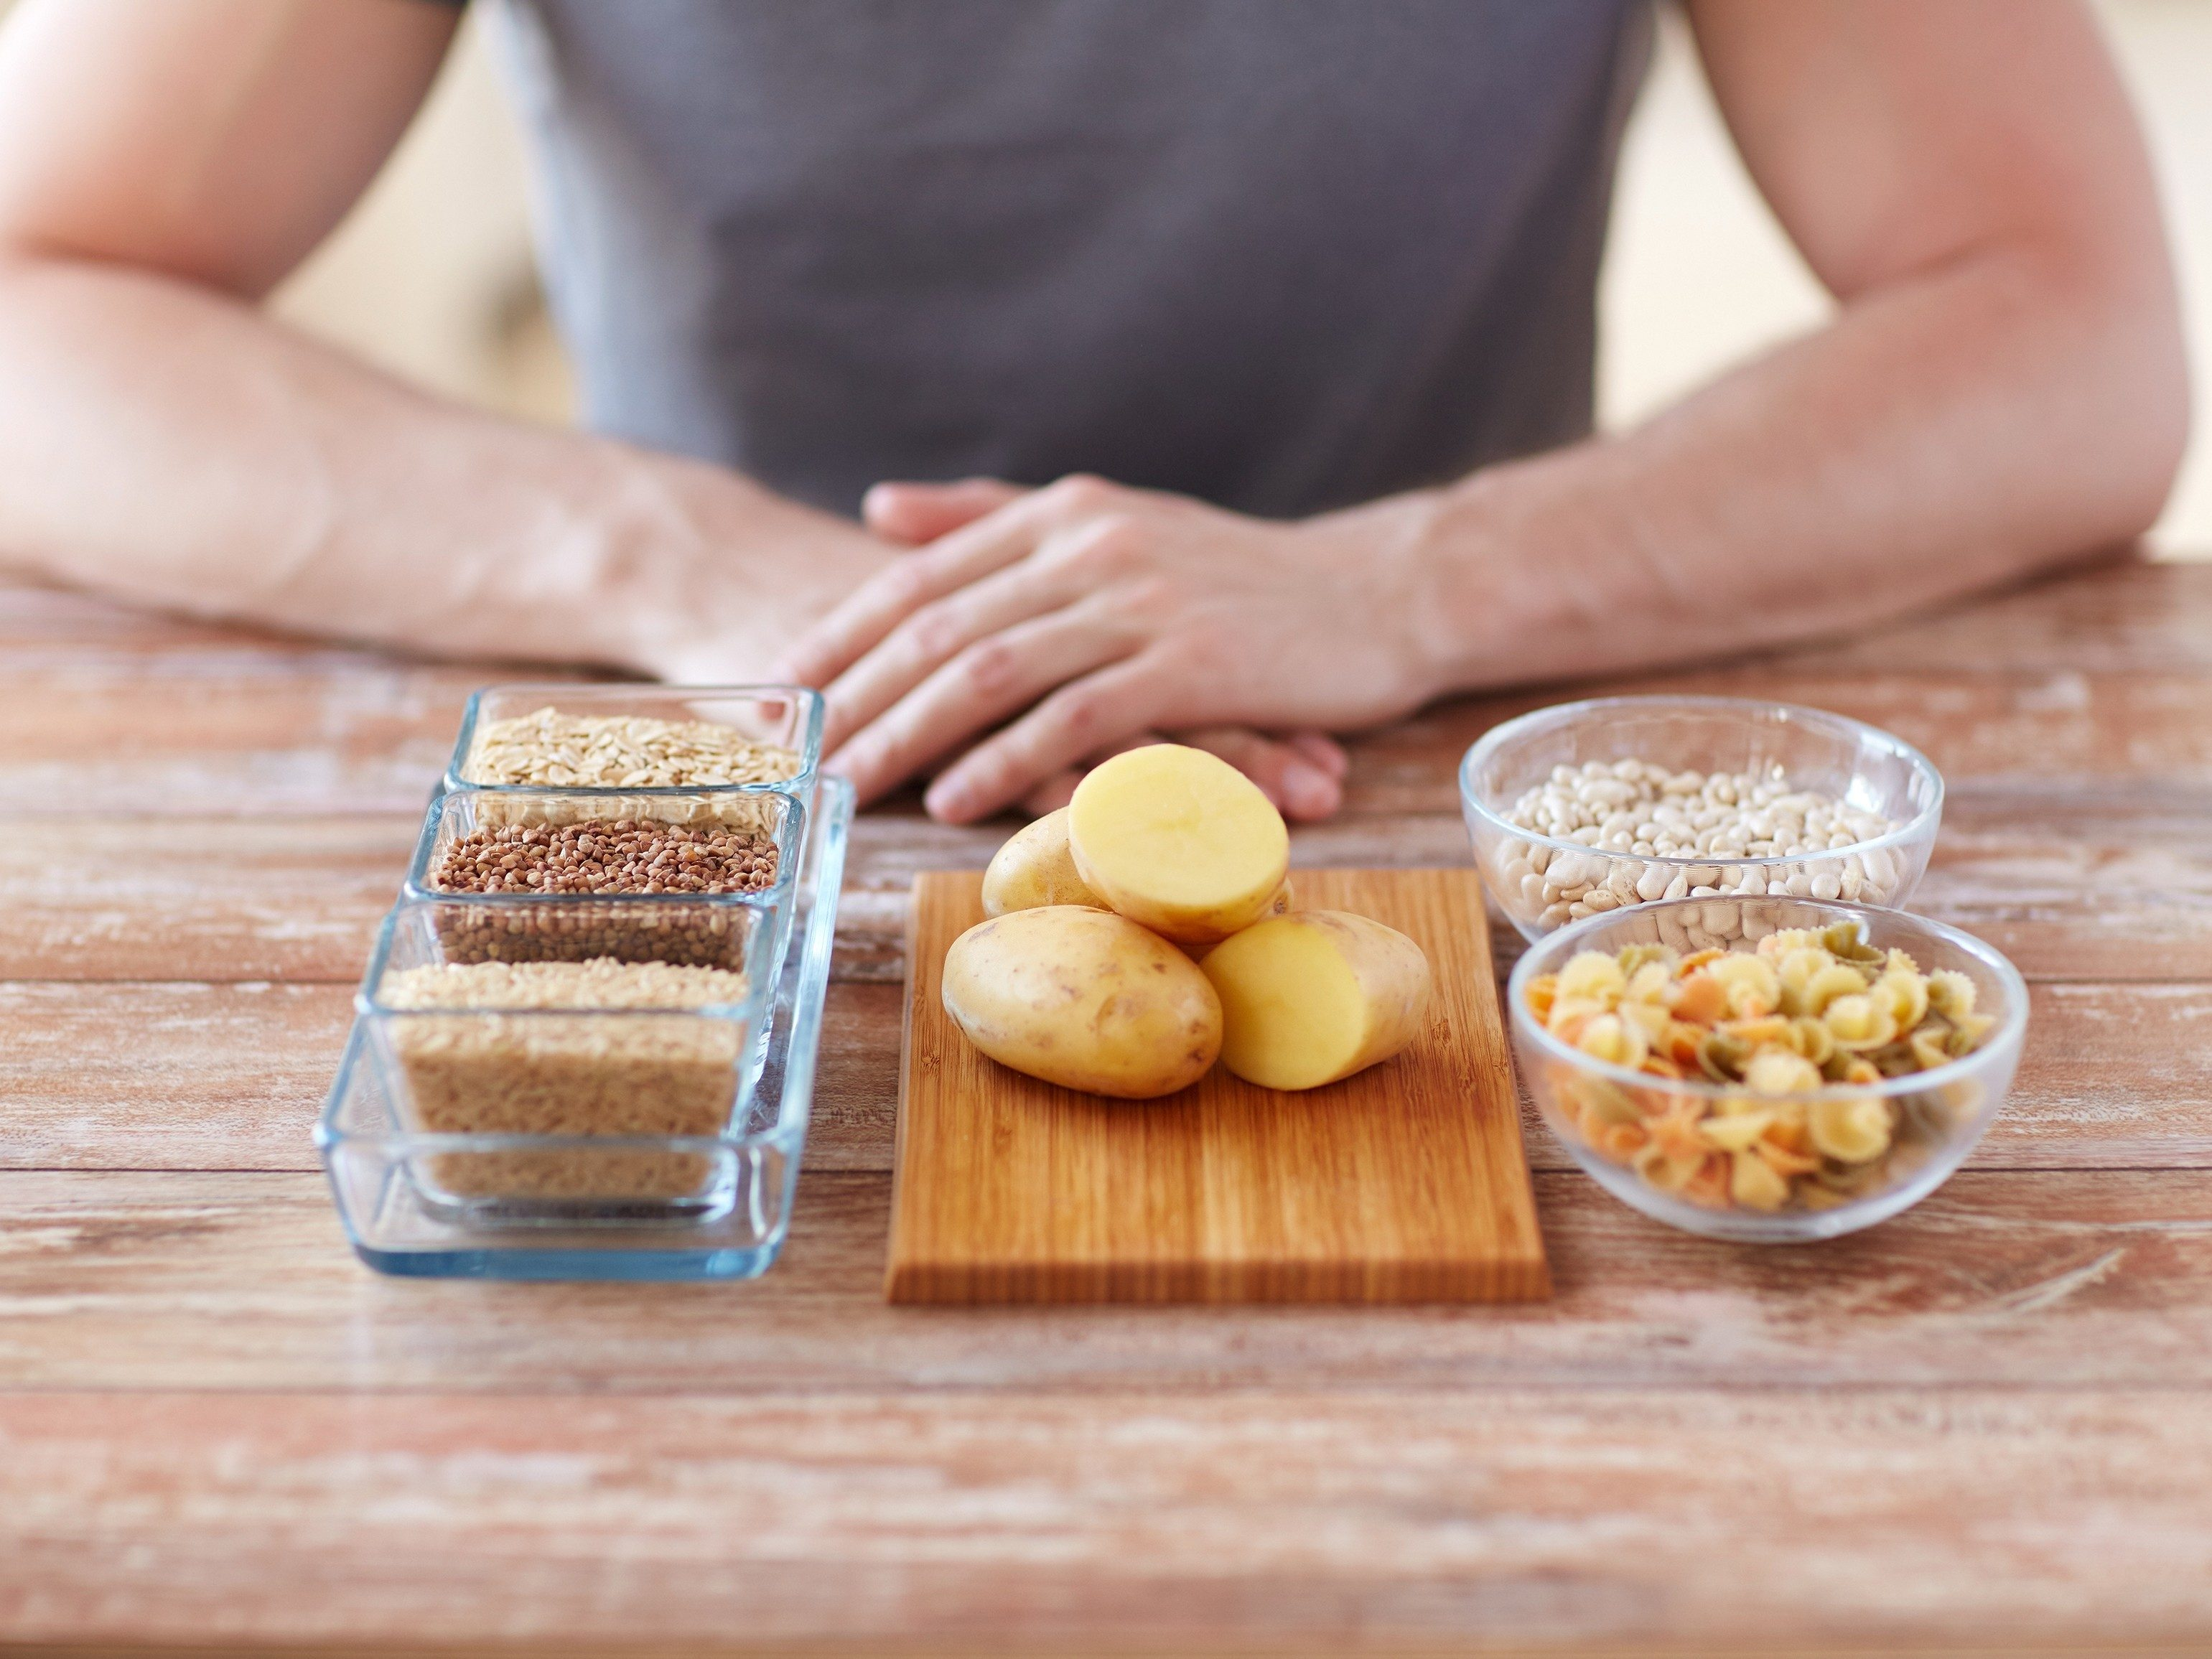 Reading Nutrition Facts: CARBOHYDRATES